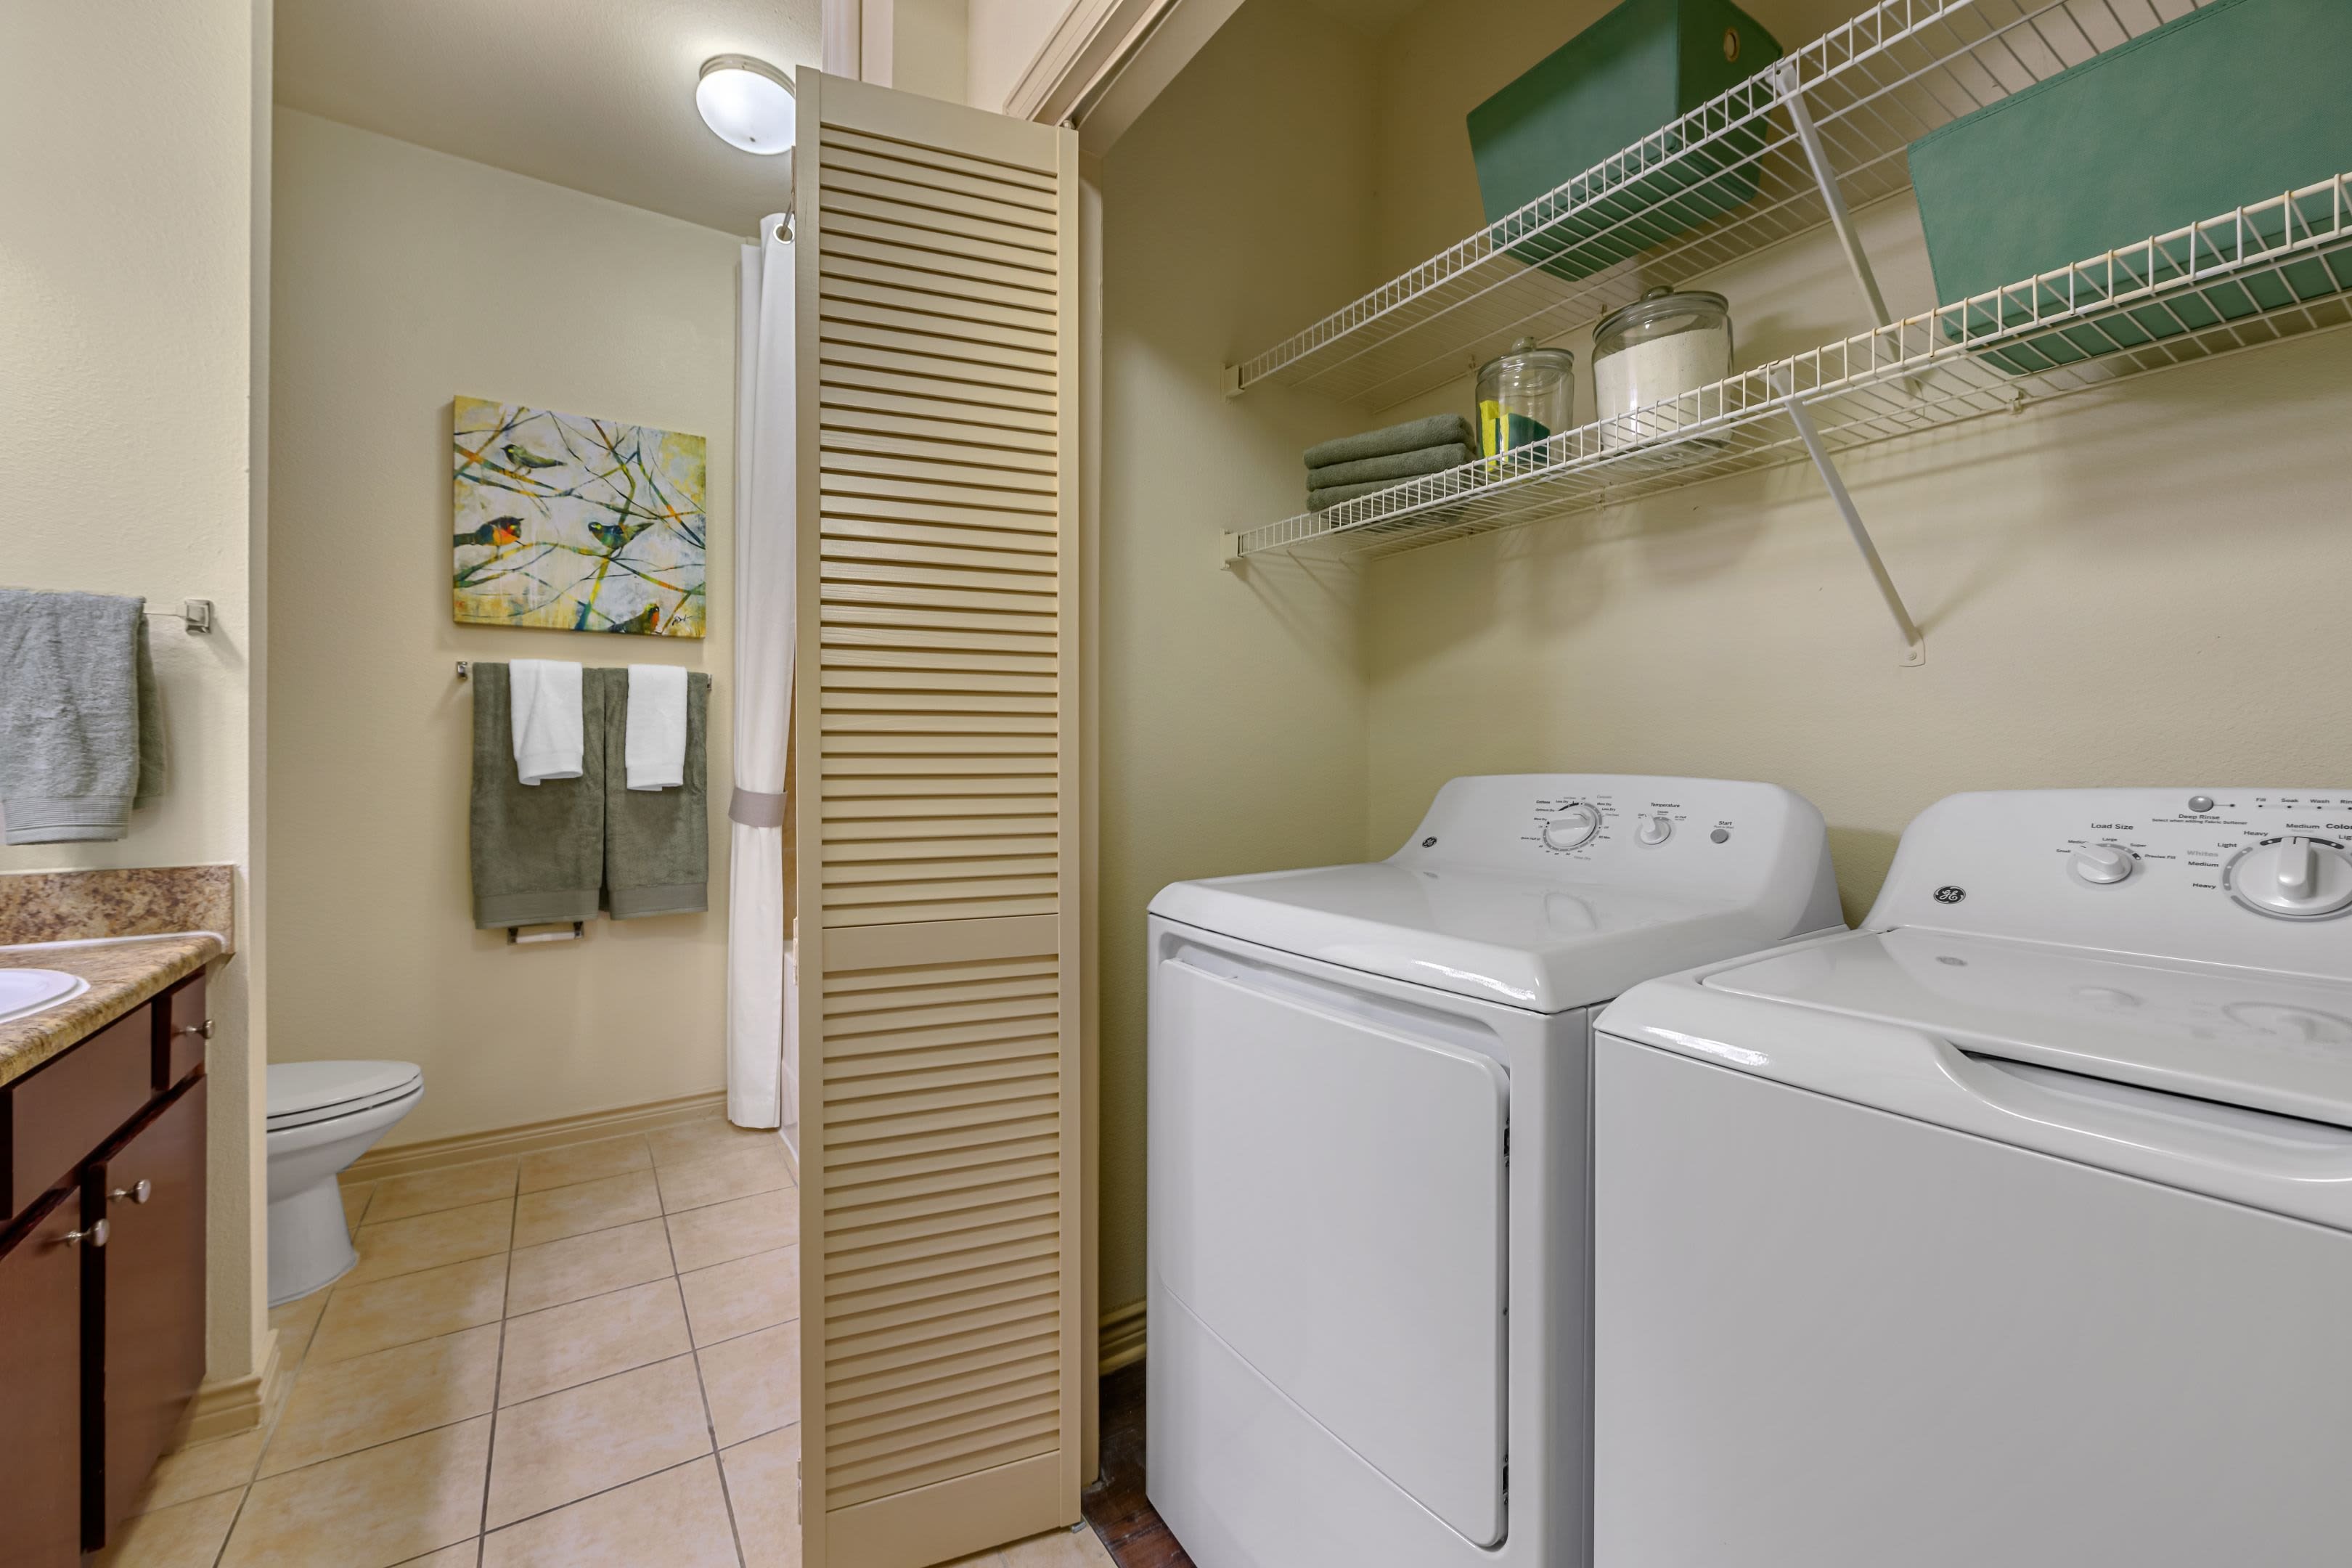 Washer and dryer in bathroom at Marquis Lakeline Station in Austin, Texas